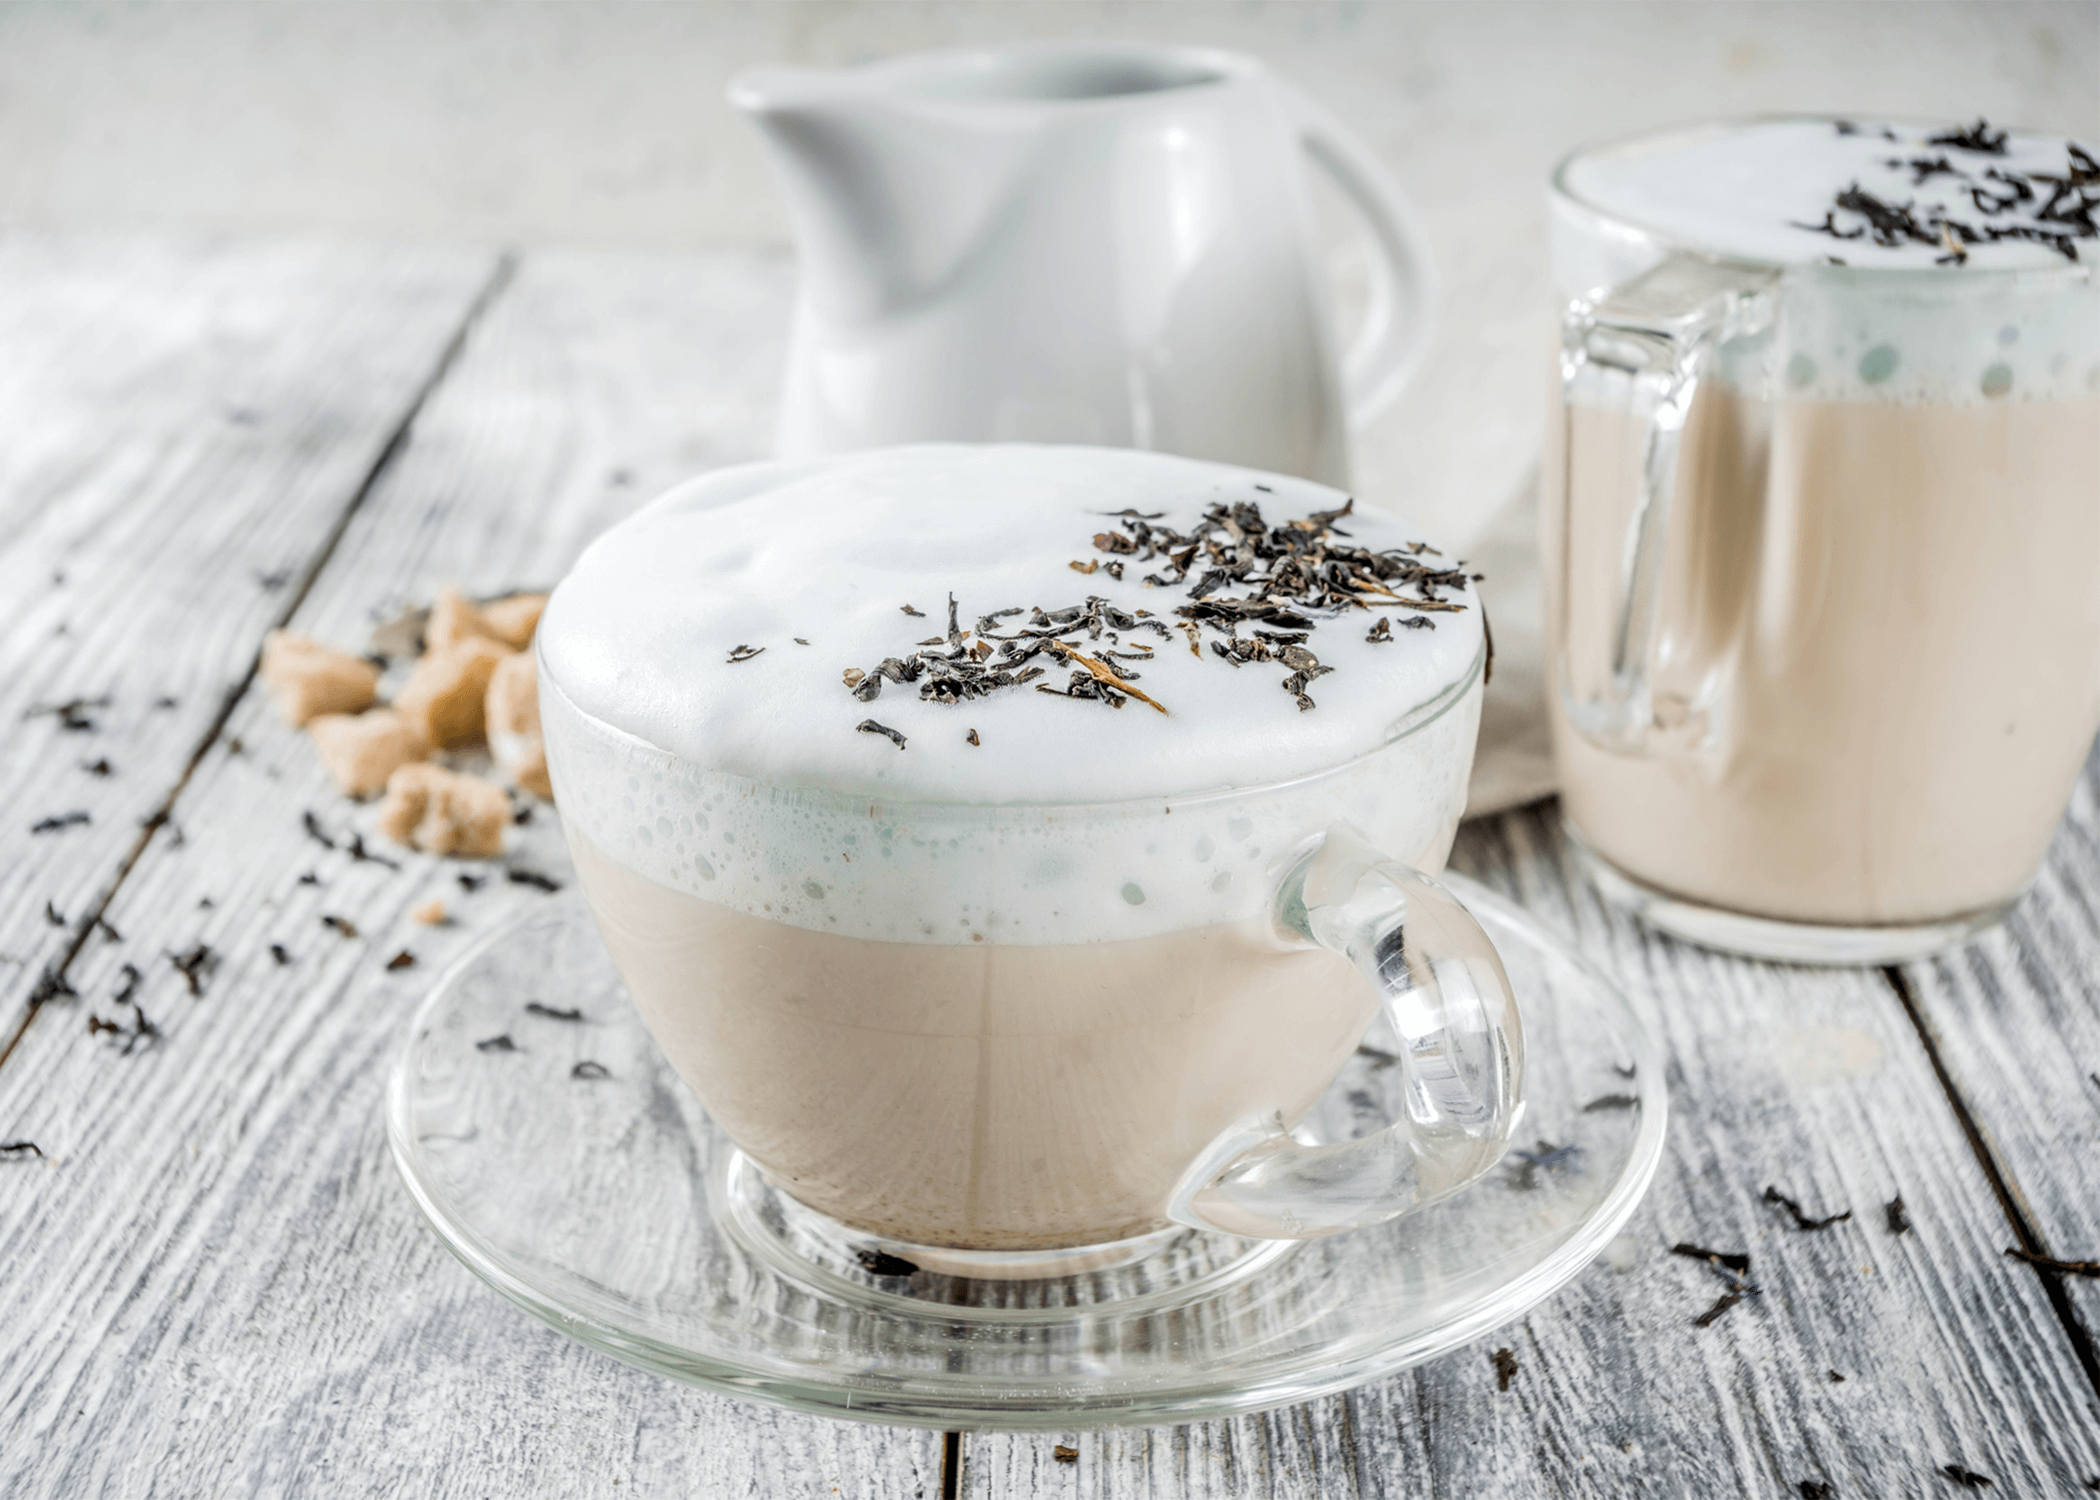 How to Make a London Fog Tea Latte Drink